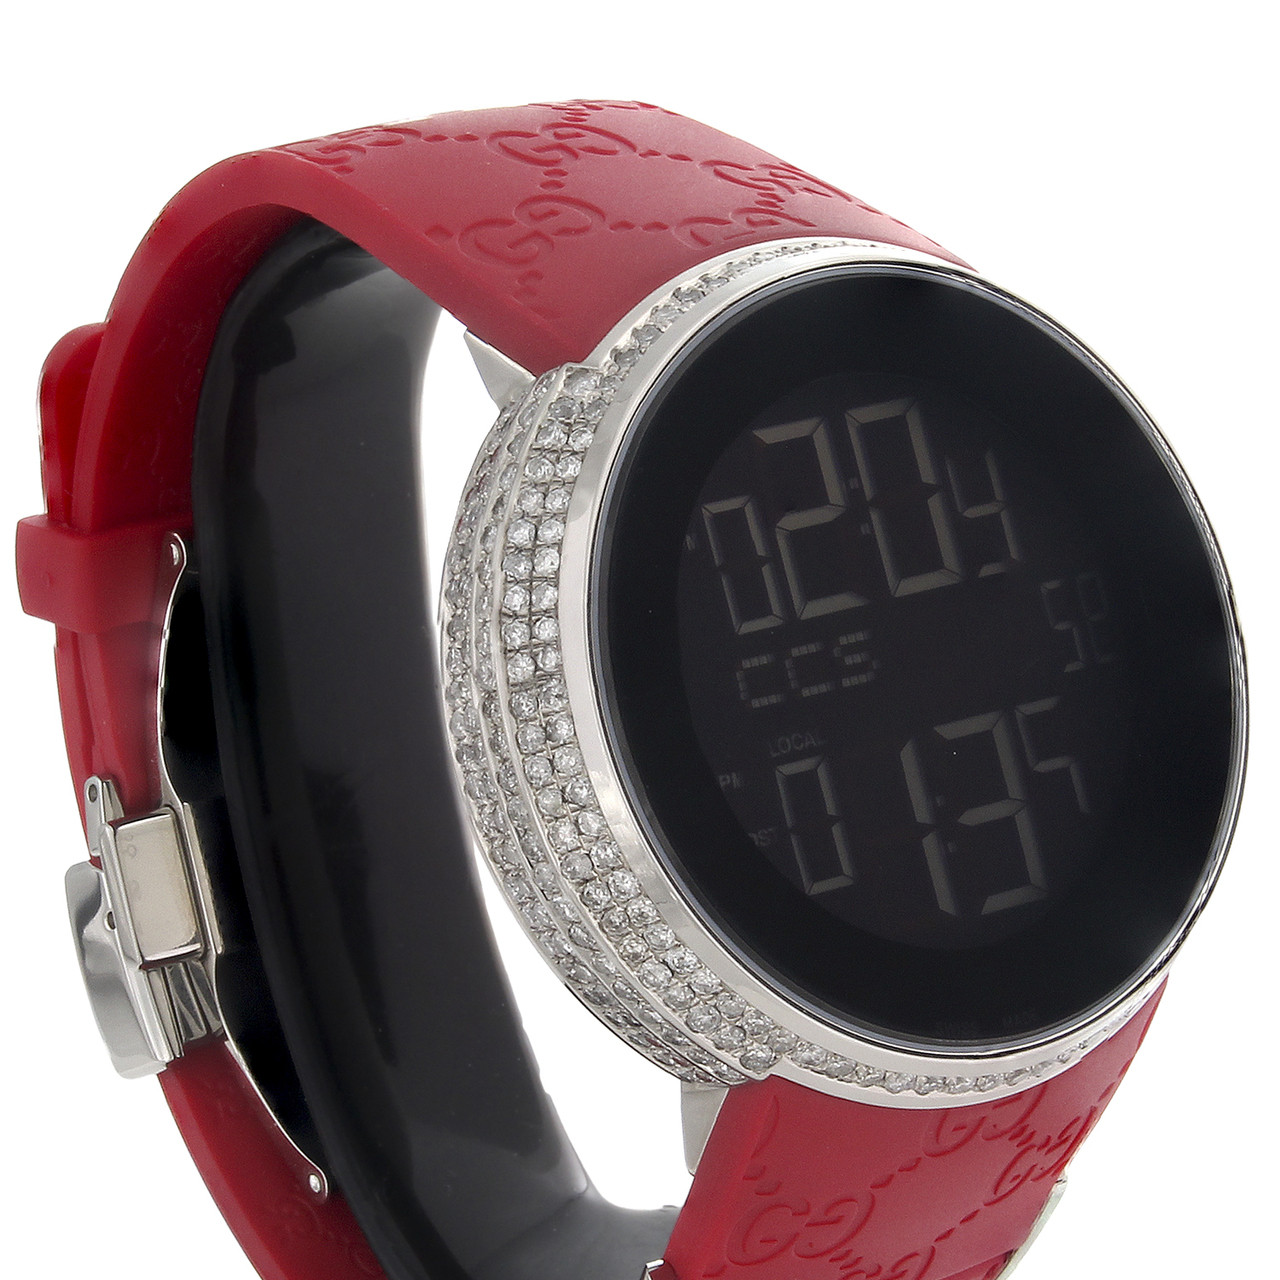 23e046cebfc Gucci Diamond Watch YA114212 Custom Full Case Digital Red I-Gucci ...